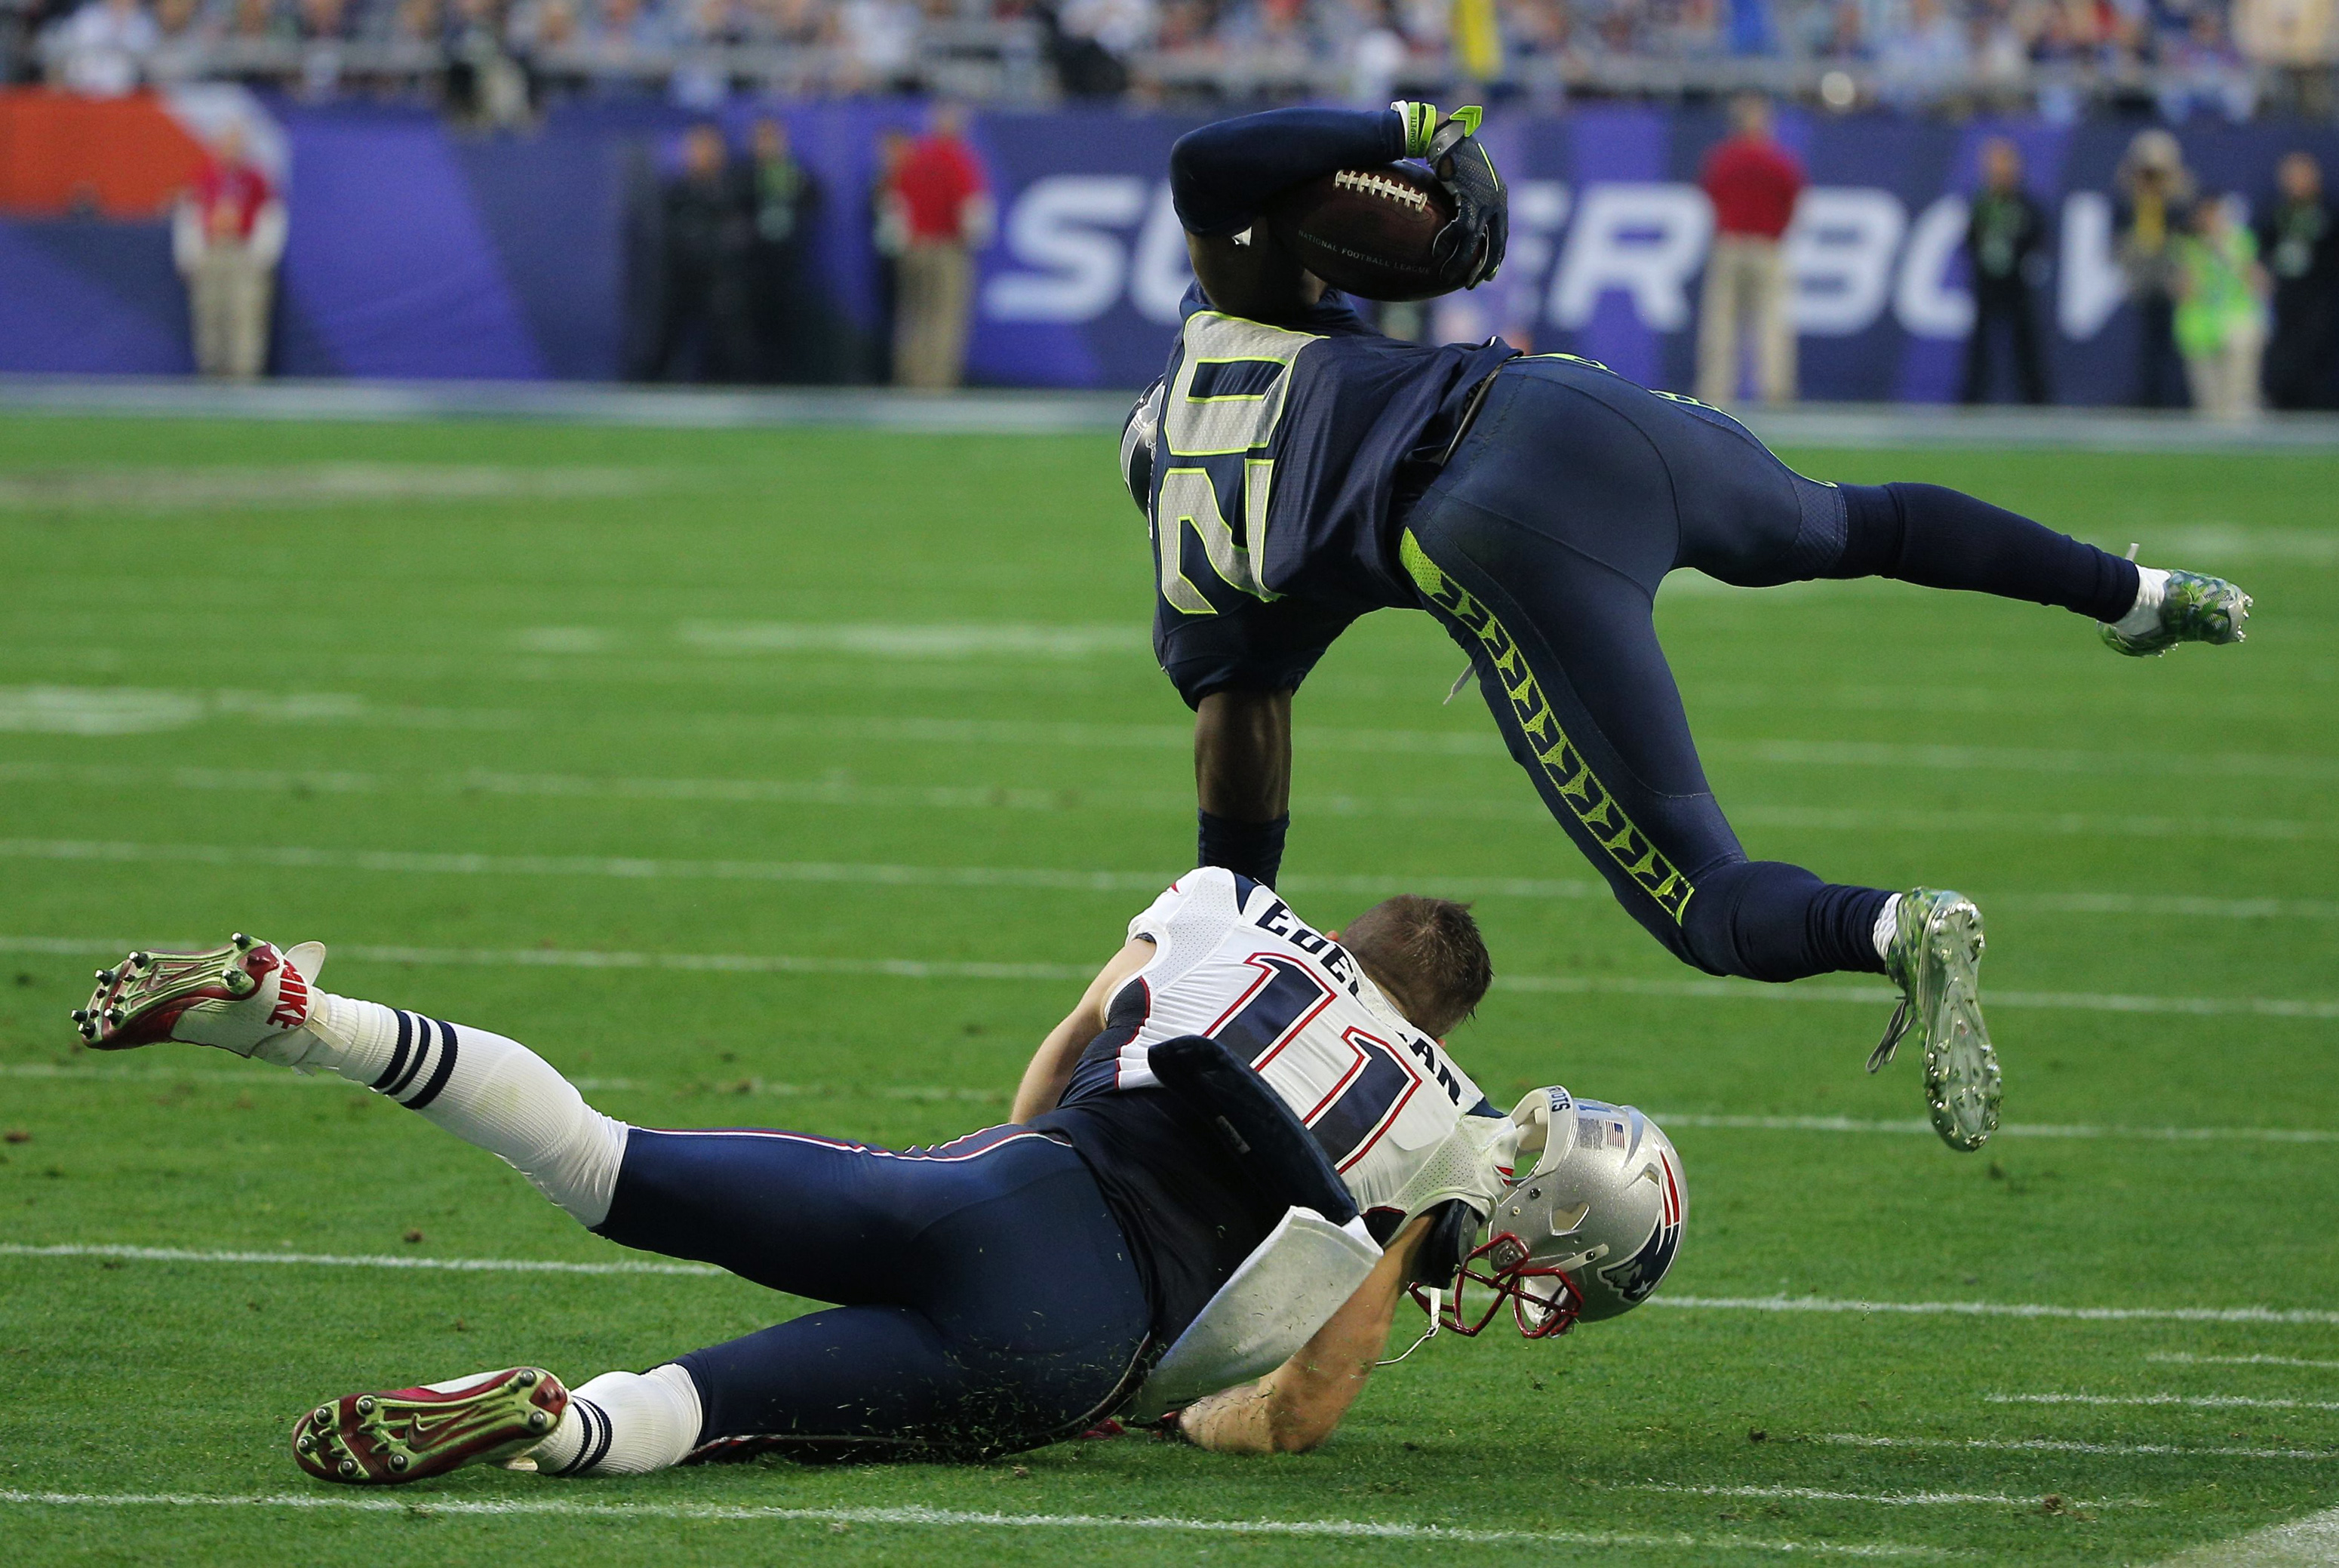 Seattle Seahawks cornerback Lane is tackled by New England Patriots wide receiver Edelman after making a first quarter interception during the NFL Super Bowl XLIX football game in Glendale